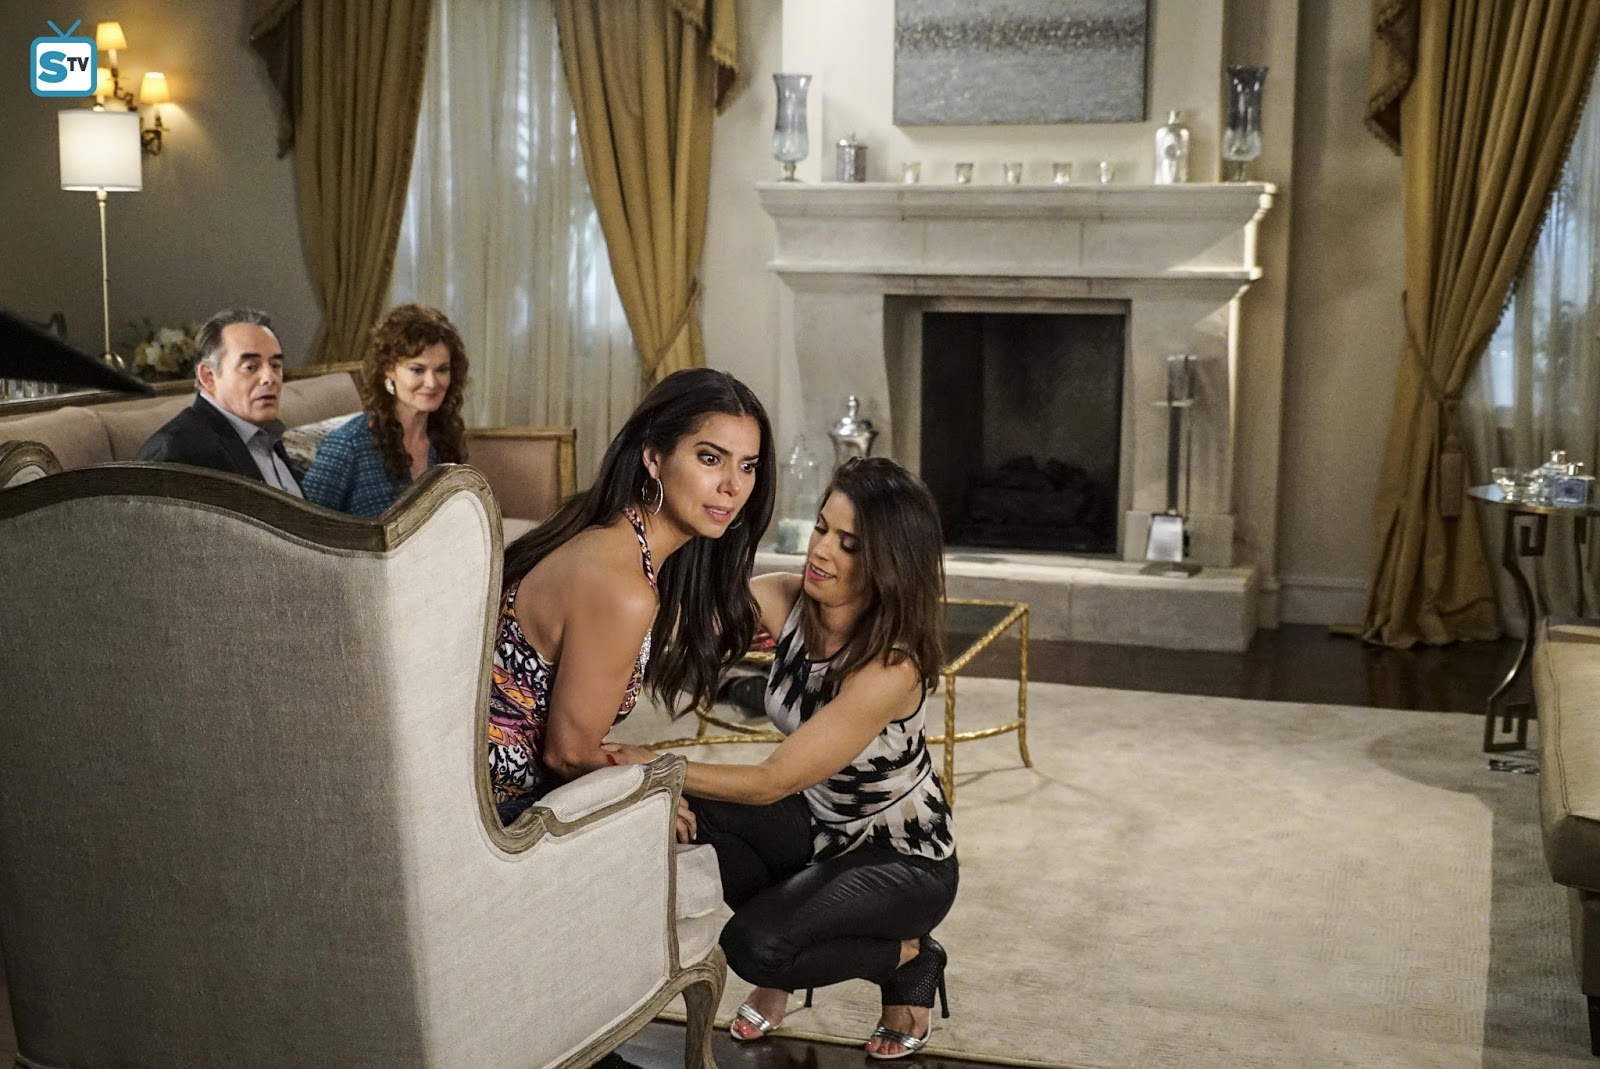 Devious Maids - Anatomy of a Murder (Season Finale) - Review ...